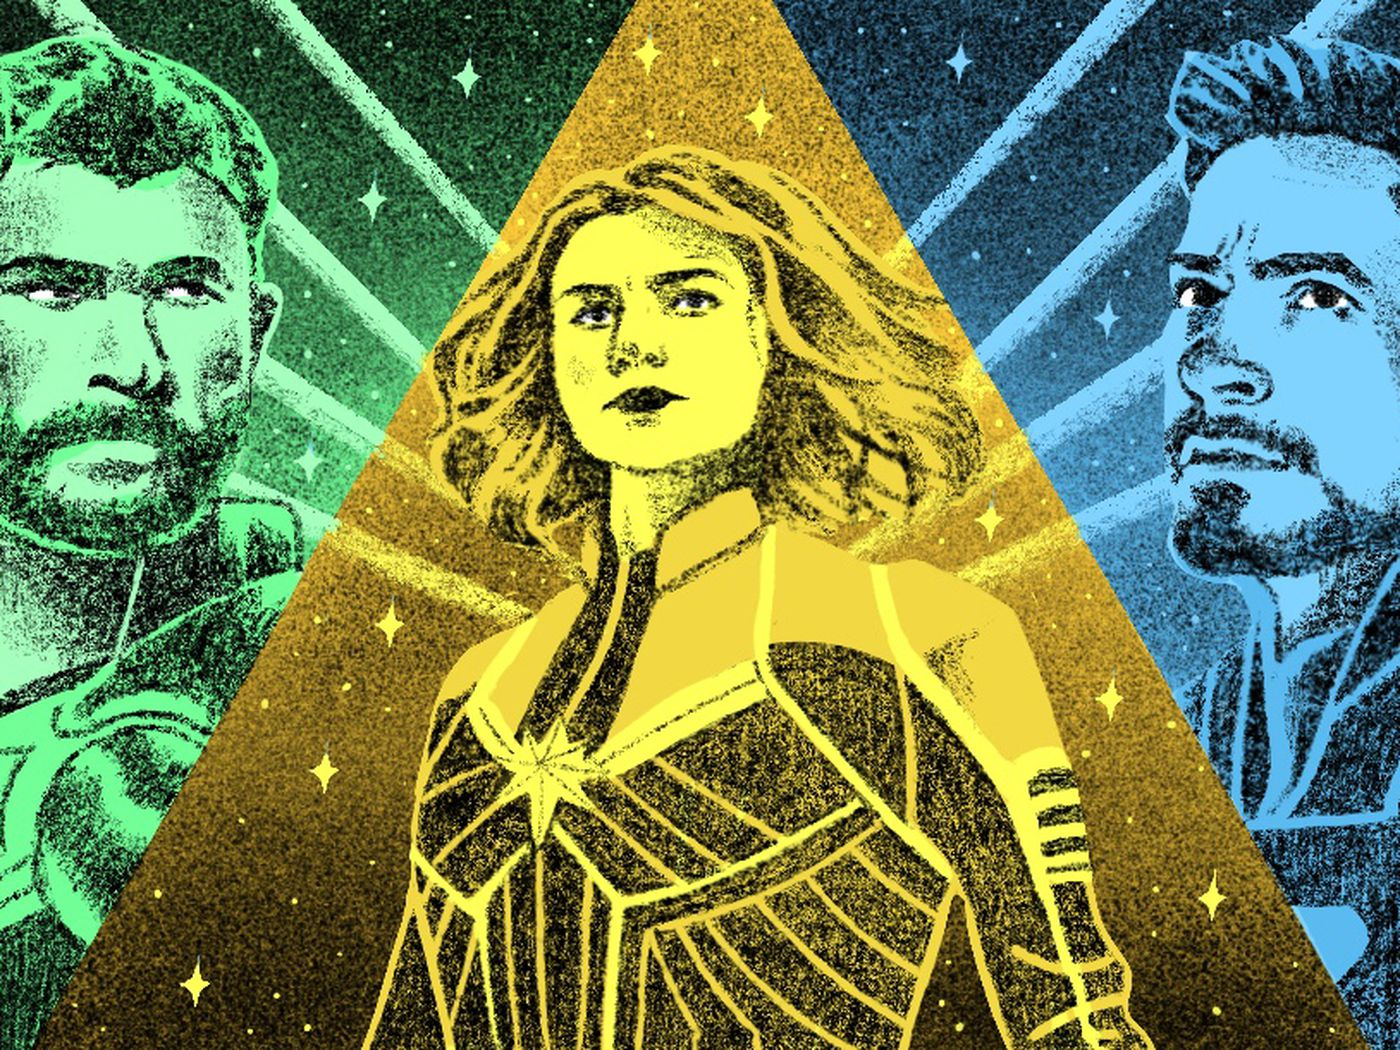 Avengers Endgame: 8 Marvel movies to watch before the premiere - Vox